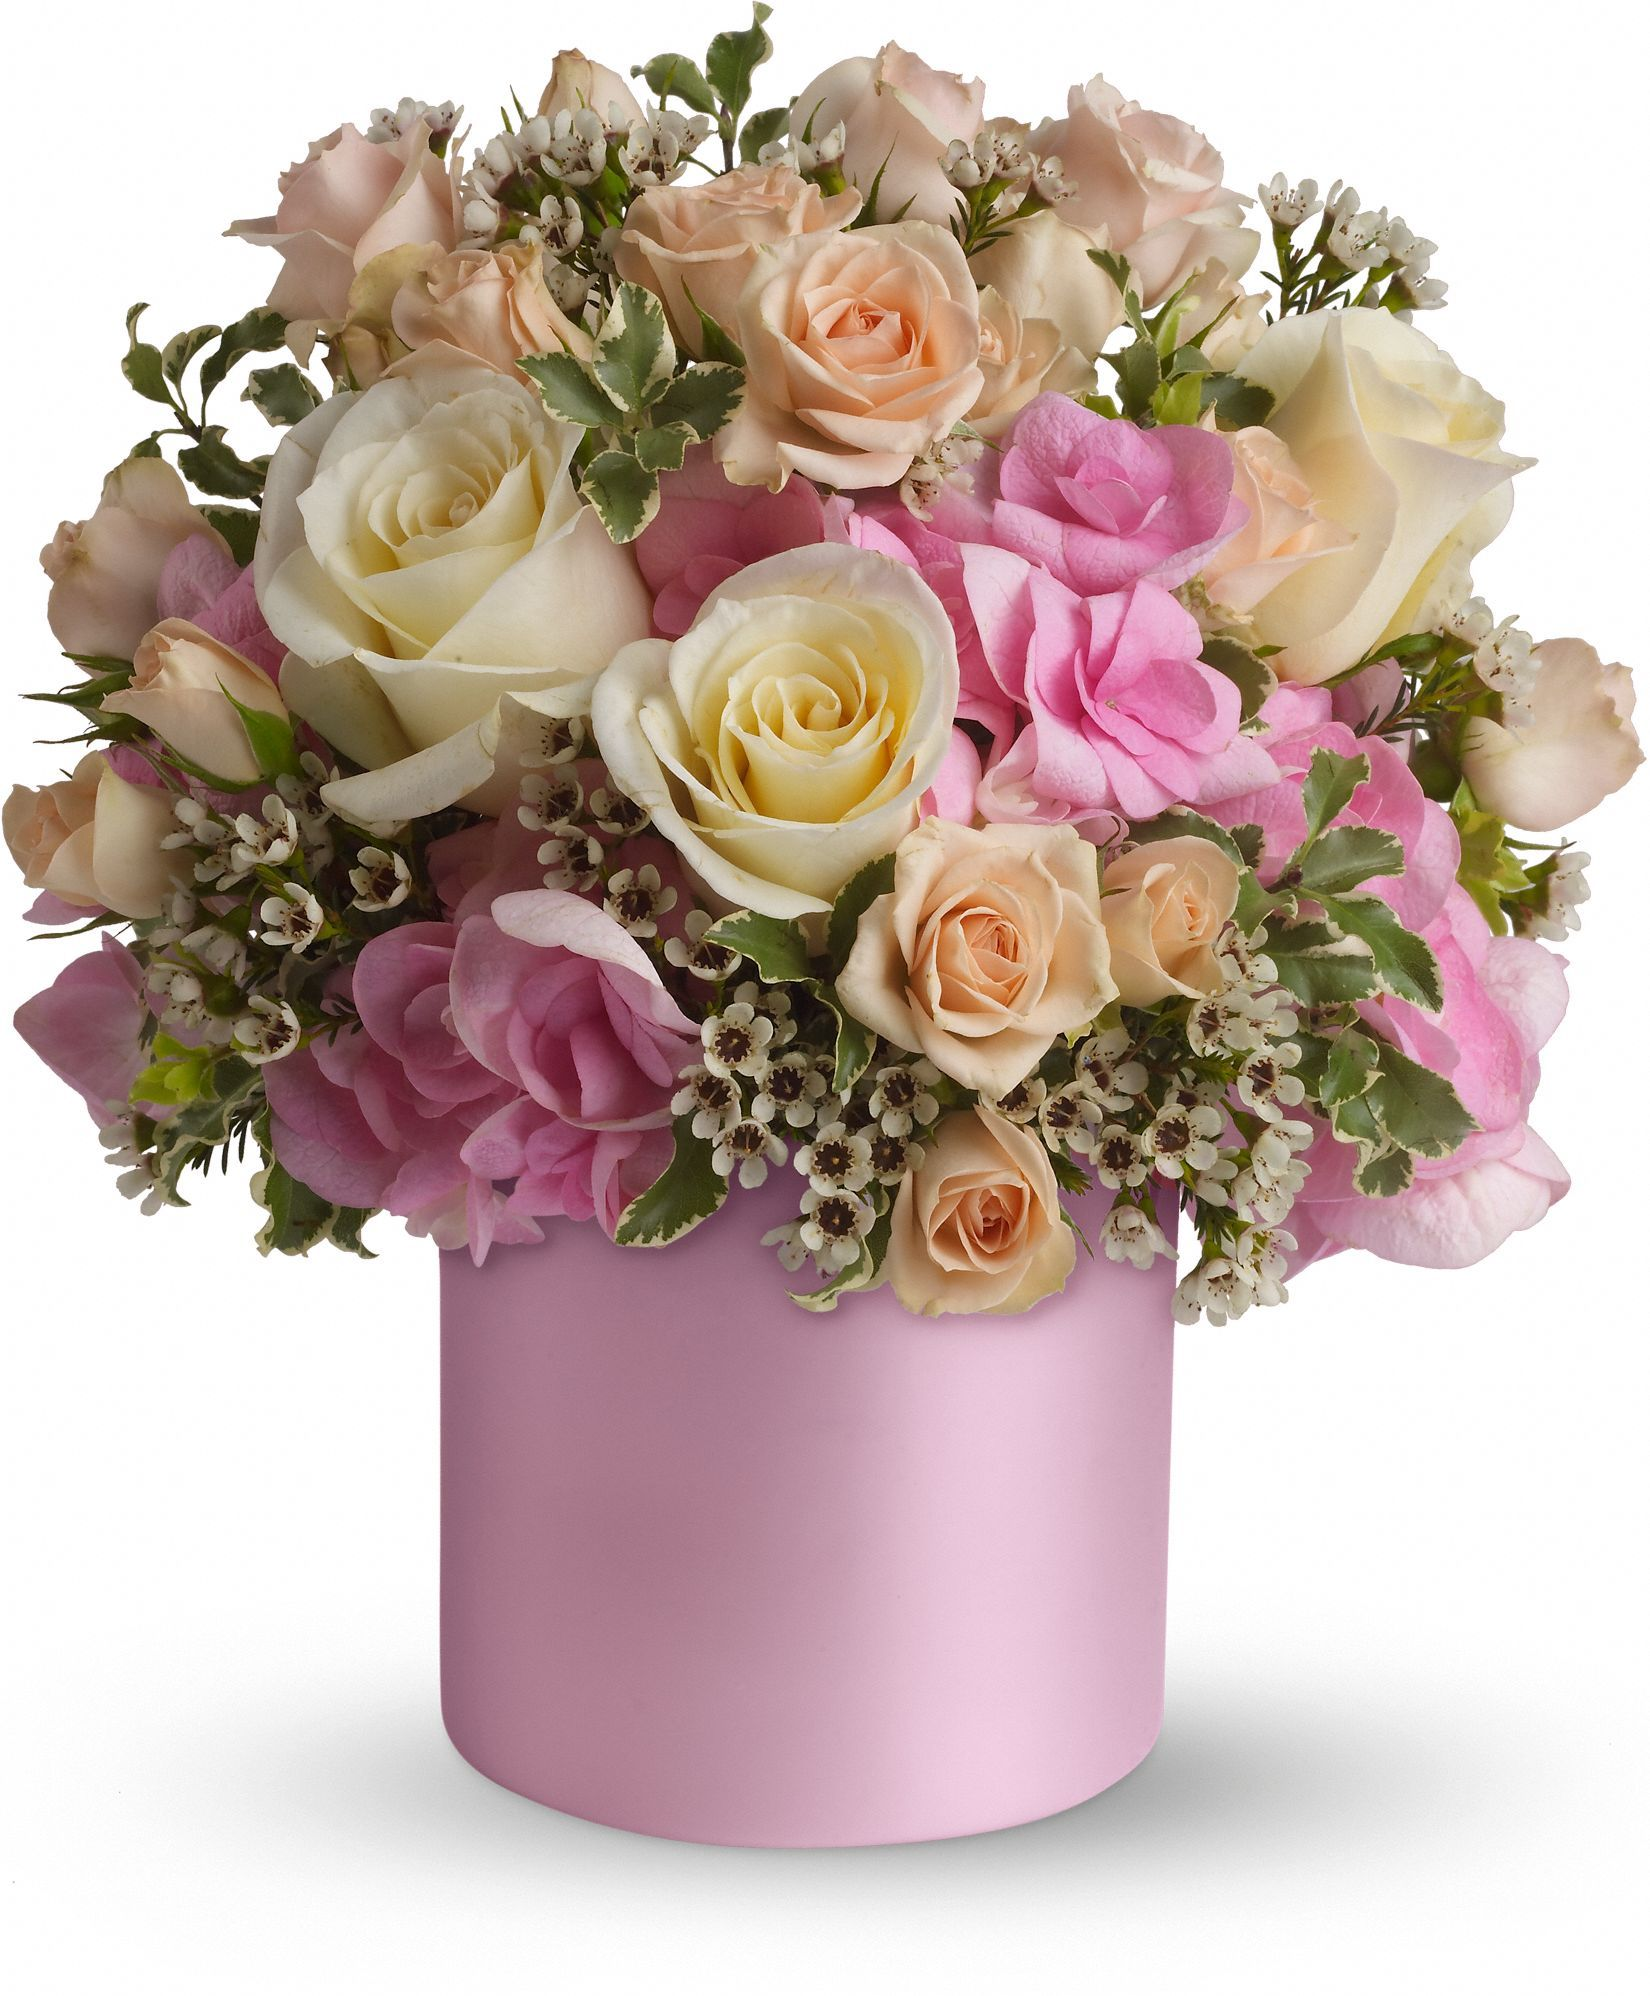 Telefloras blushing beauty box pinterest flowers floral make her blush with the soft pink innocence of this traditional bouquet a shimmering satin pink cylinder holds feminine blooms in shades of soft pink and izmirmasajfo Images